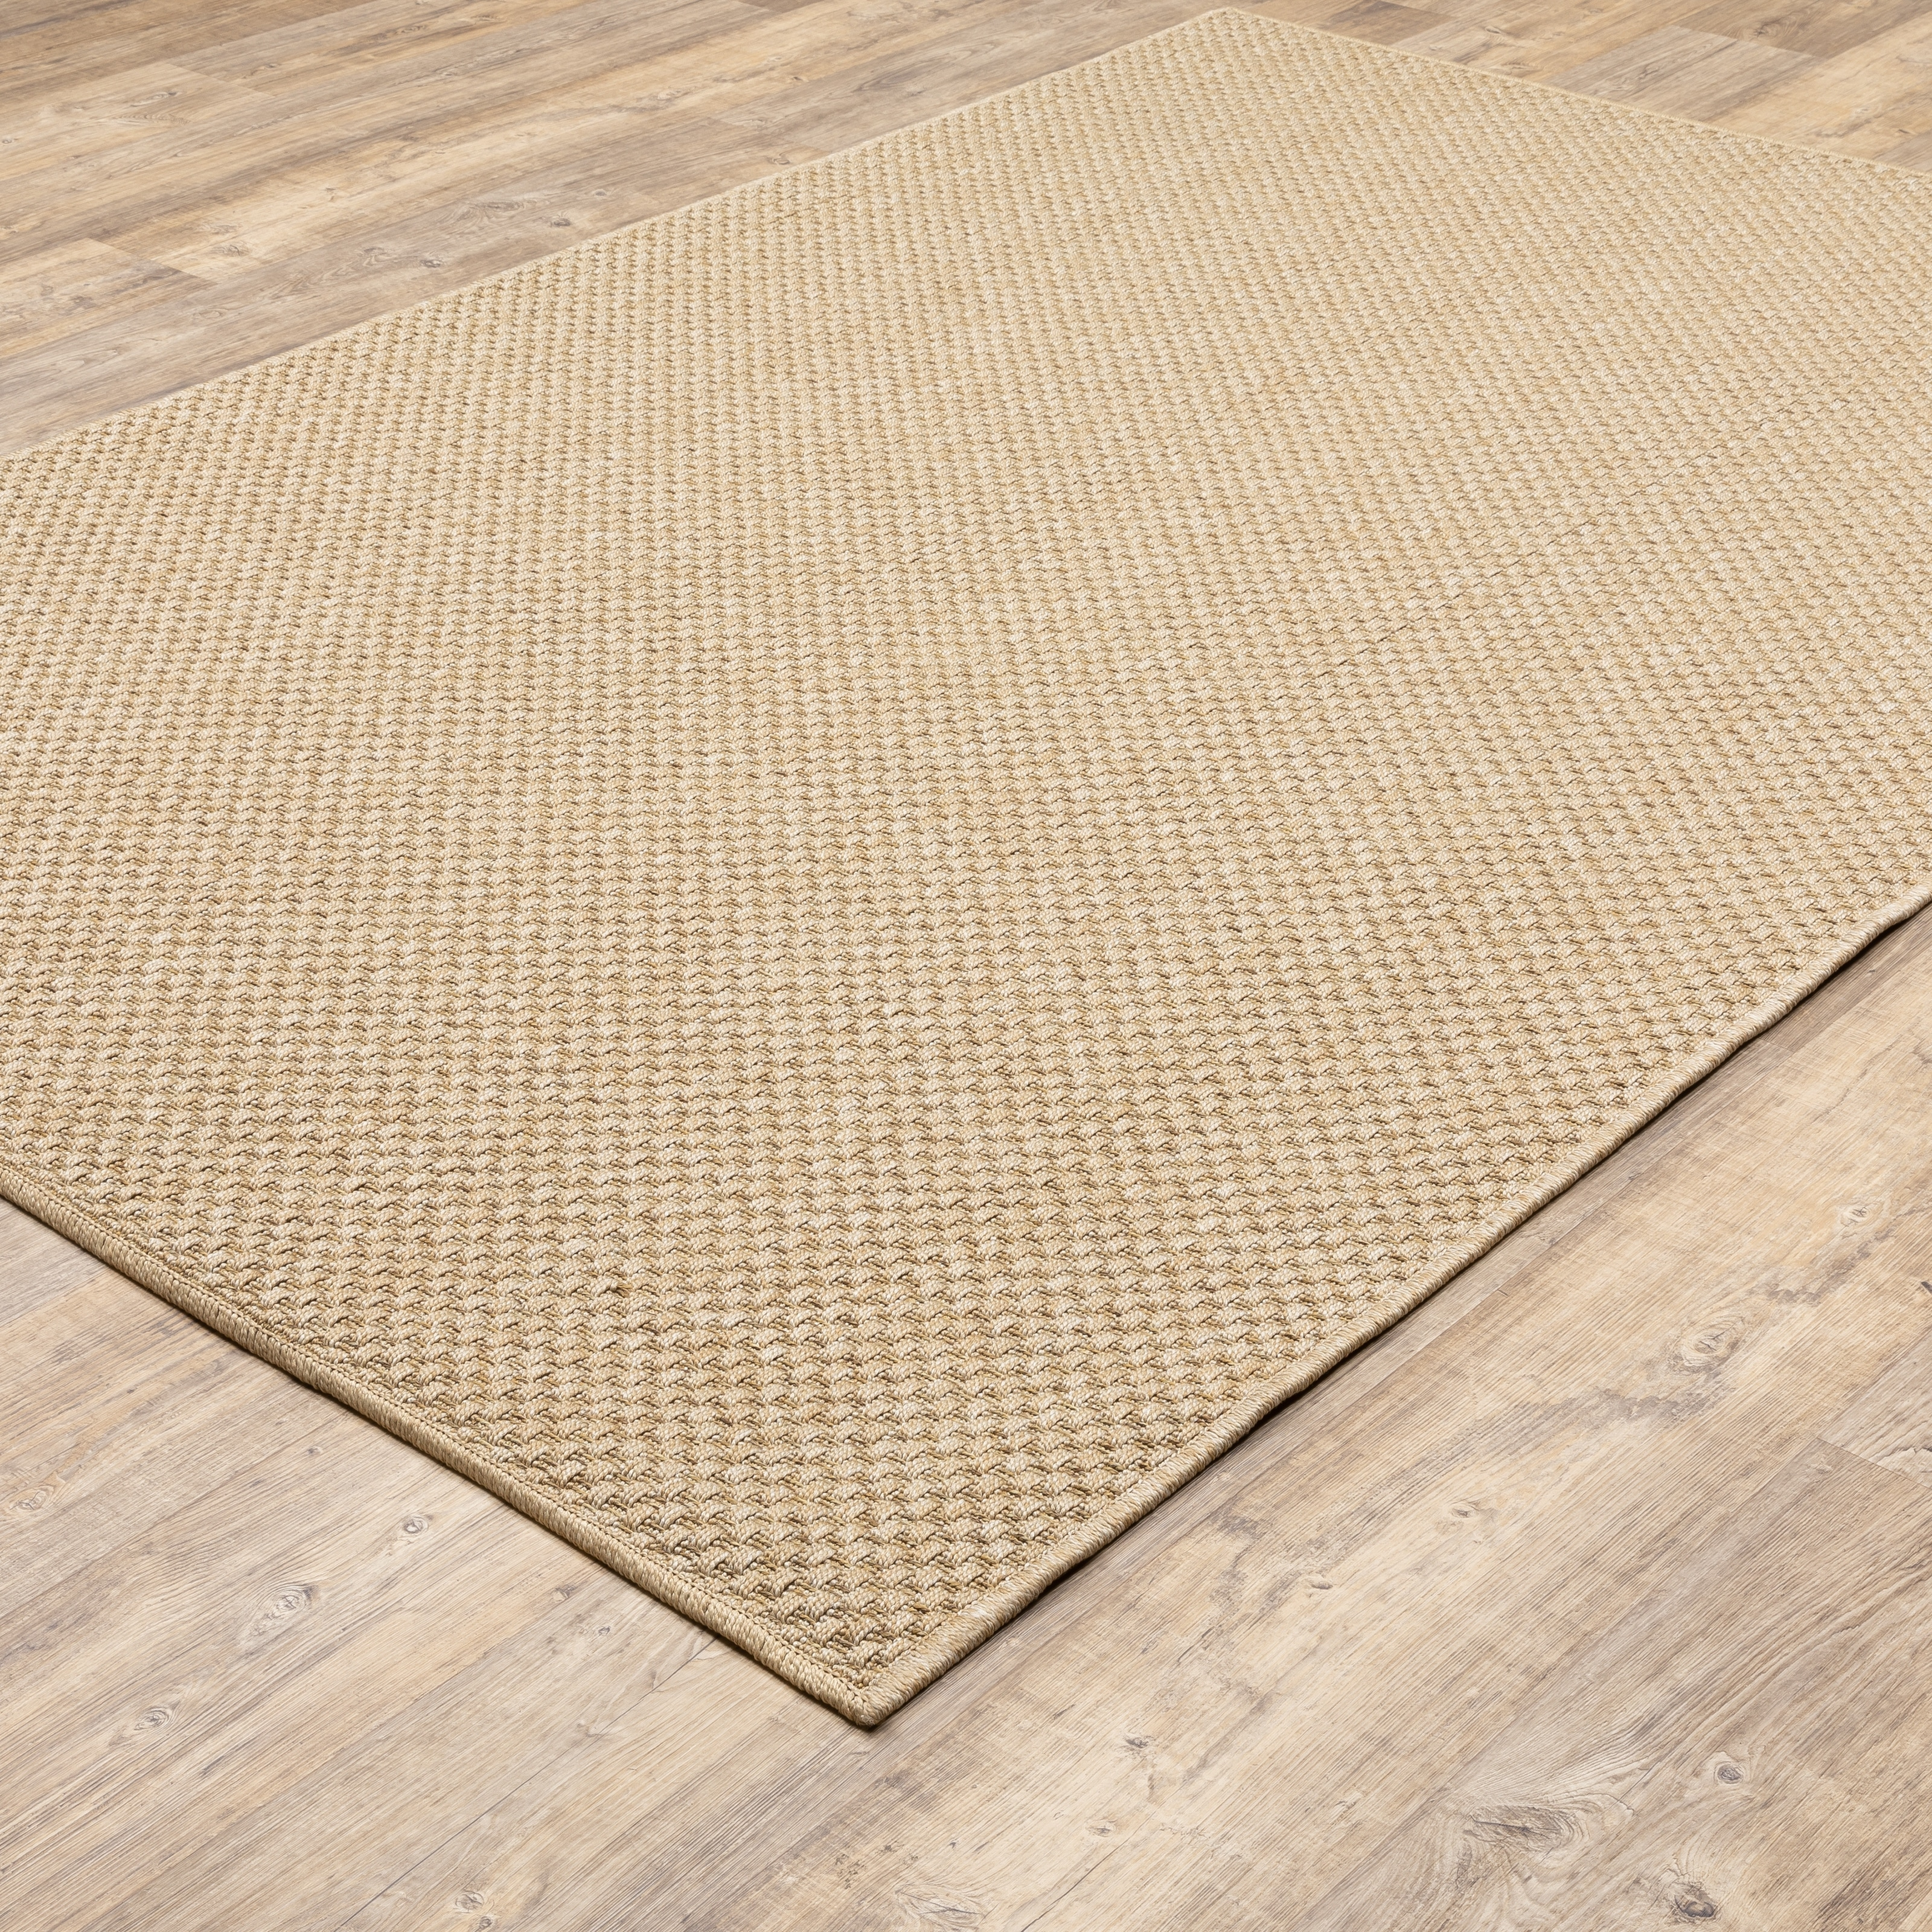 3900 VERANDAH SAND 226 Rugs with SPECIAL OFFER OUTDOOR